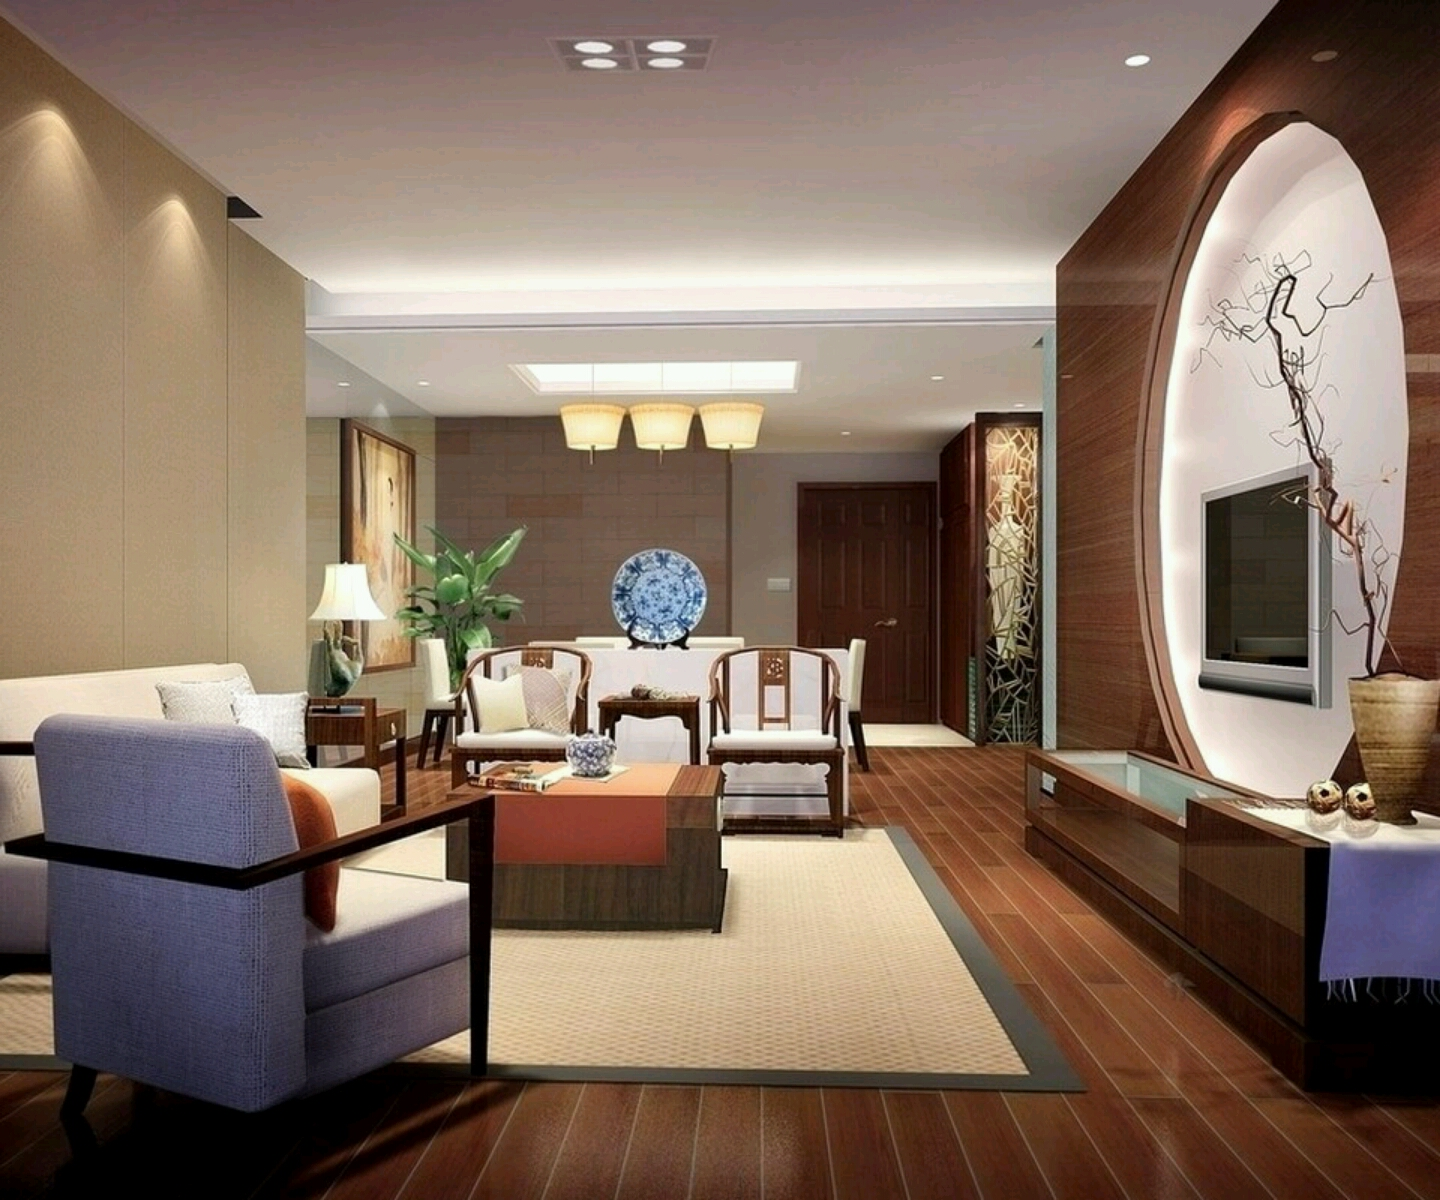 Luxury homes interior decoration living room designs ideas for New house living room ideas